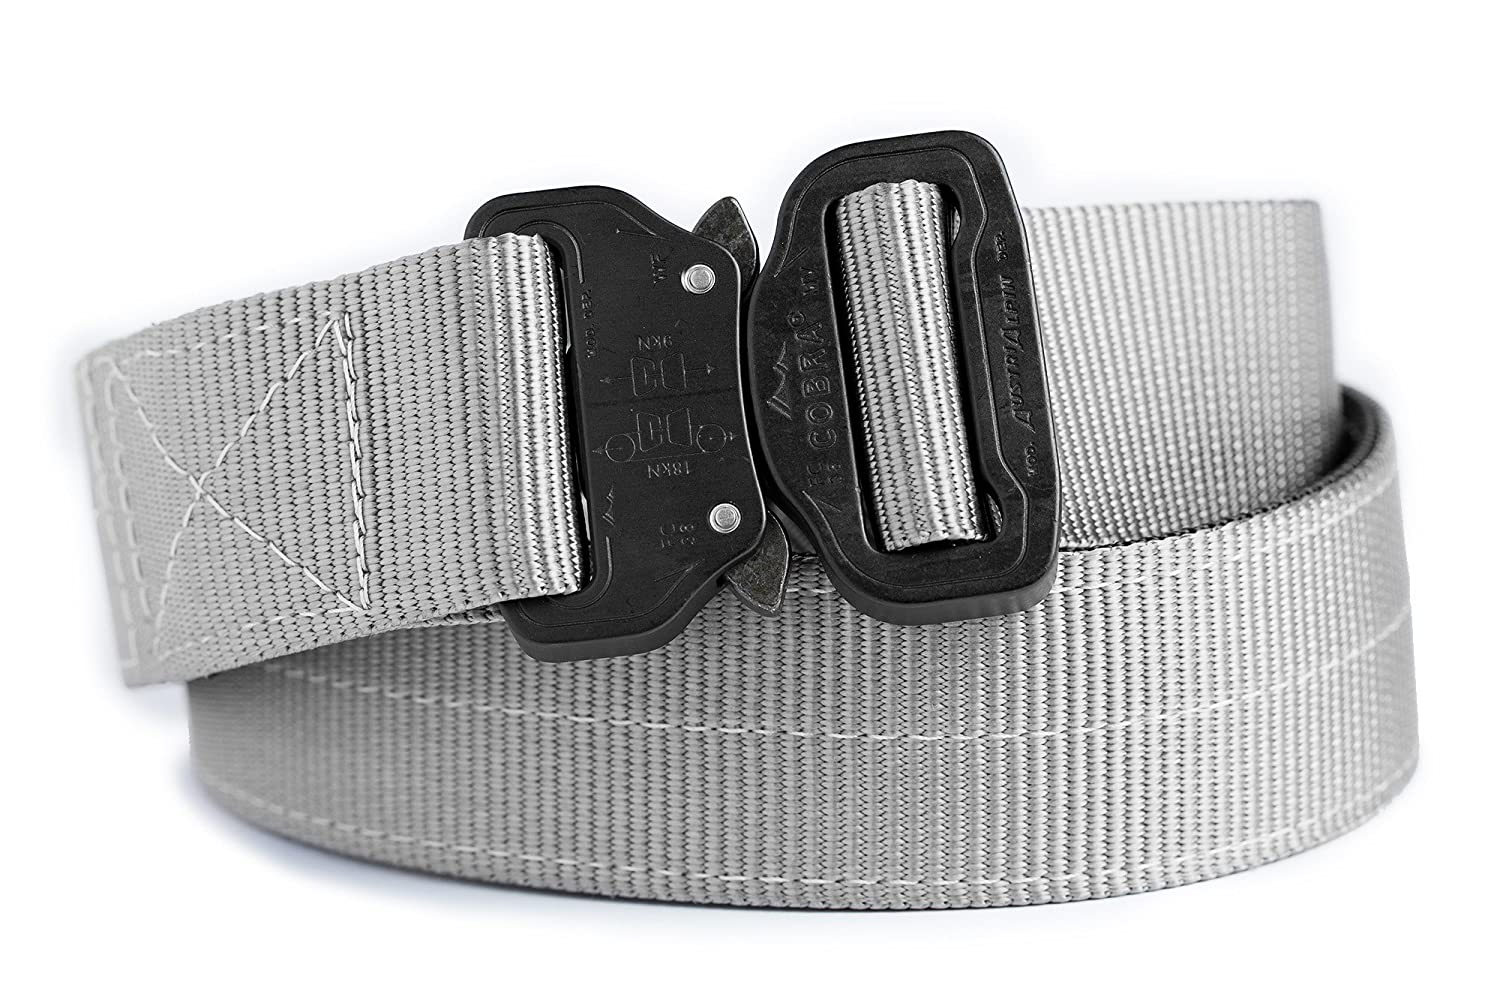 Cobra Quick Release Buckle Men's Tactical Belt –2 PLY 1 5